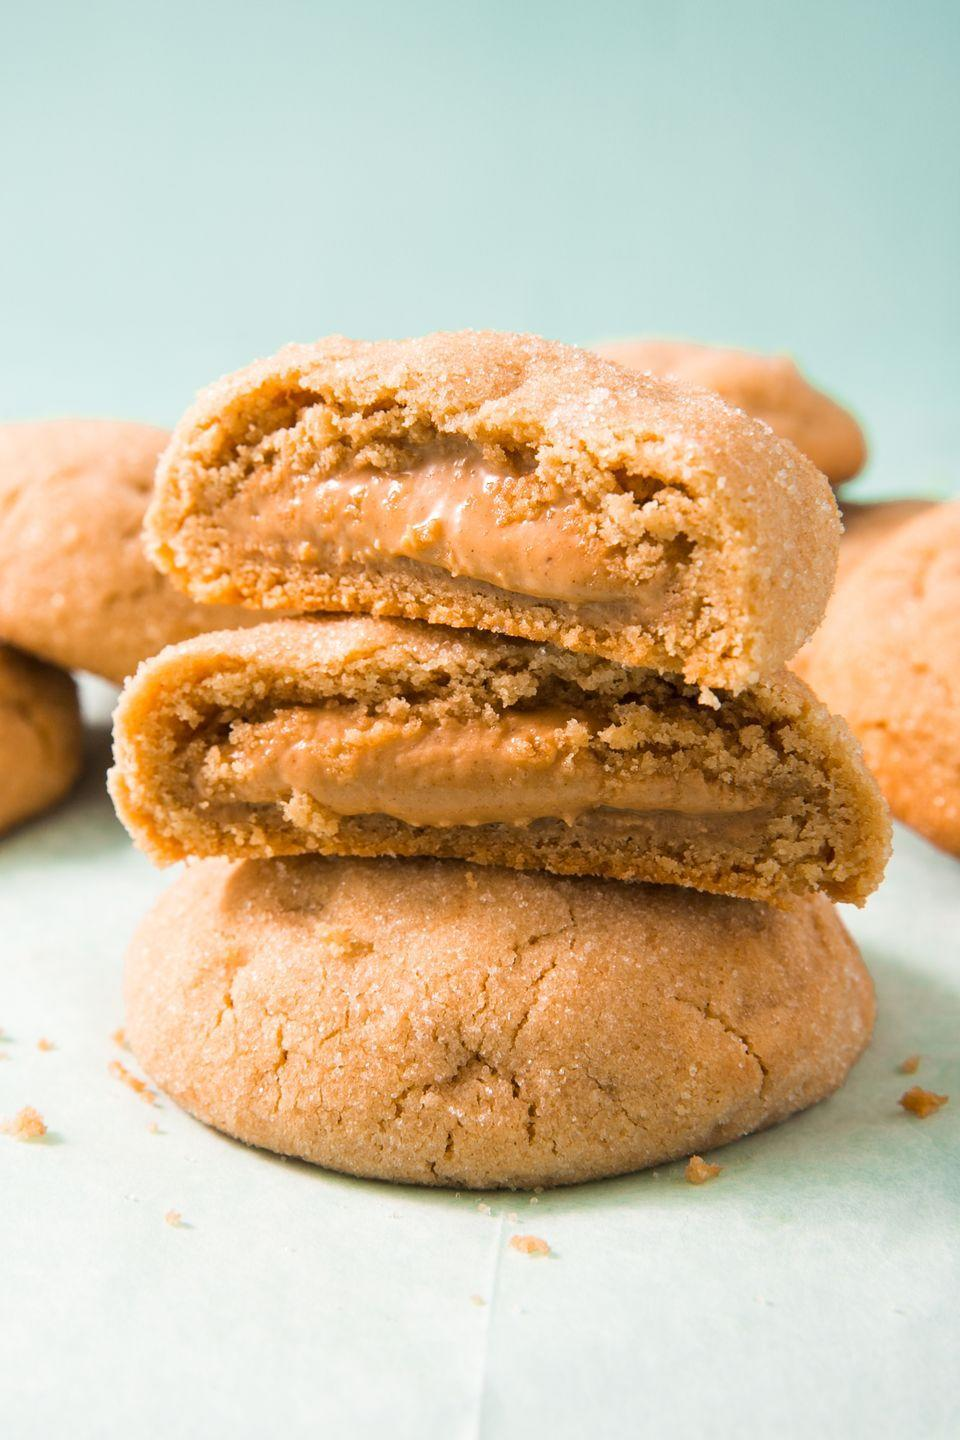 """<p>You'll be obsessed with this hack. </p><p>Get the recipe from <a href=""""https://www.delish.com/cooking/recipe-ideas/recipes/a51853/peanut-butter-stuffed-cookies-recipe/"""" rel=""""nofollow noopener"""" target=""""_blank"""" data-ylk=""""slk:Delish"""" class=""""link rapid-noclick-resp"""">Delish</a>. </p>"""